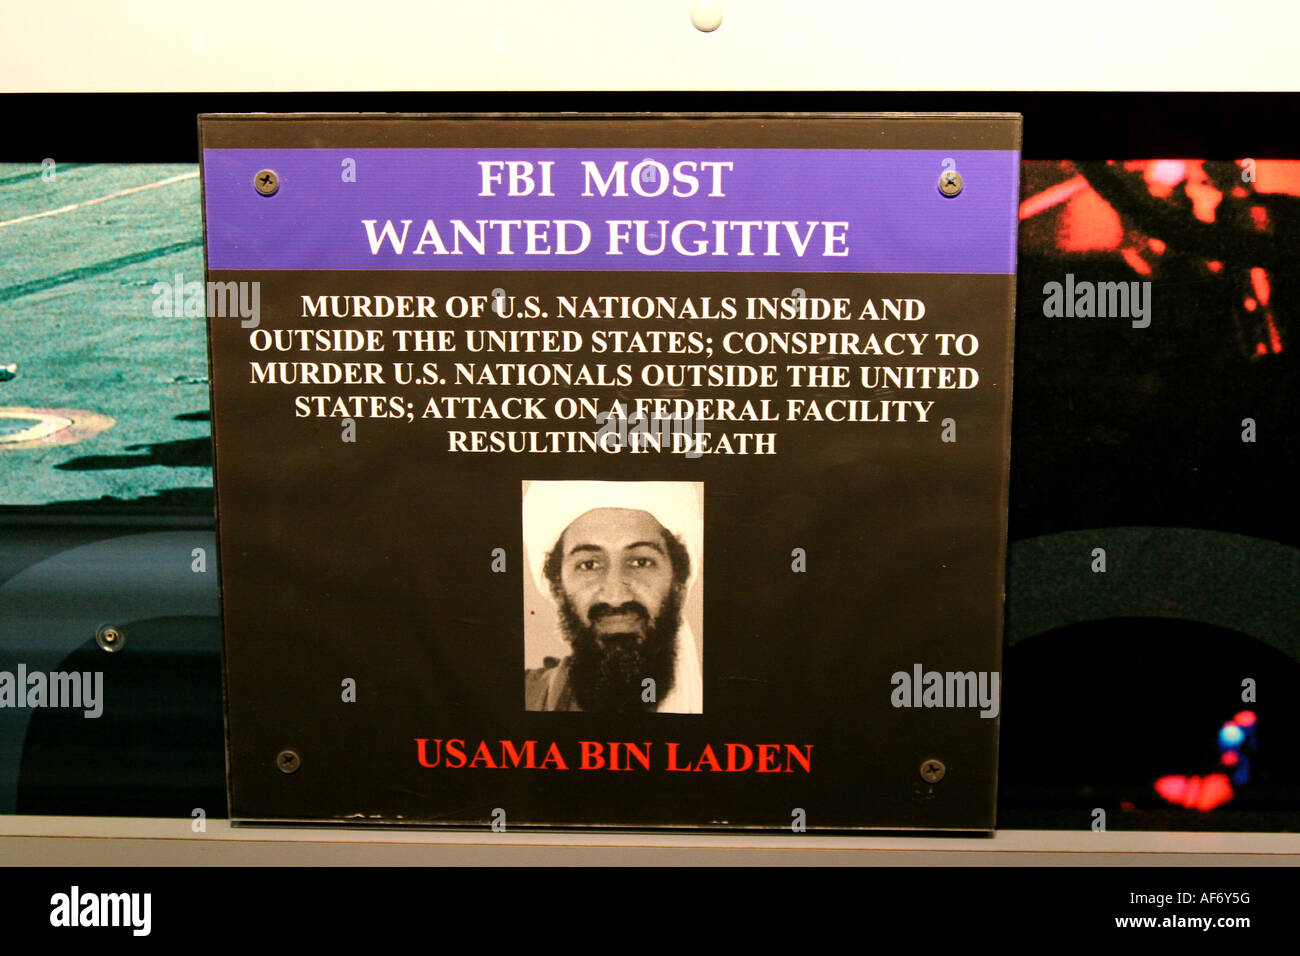 Usama Osama Bin Laden most wanted sign from the fbi seen at the USS New Jersey - Stock Image